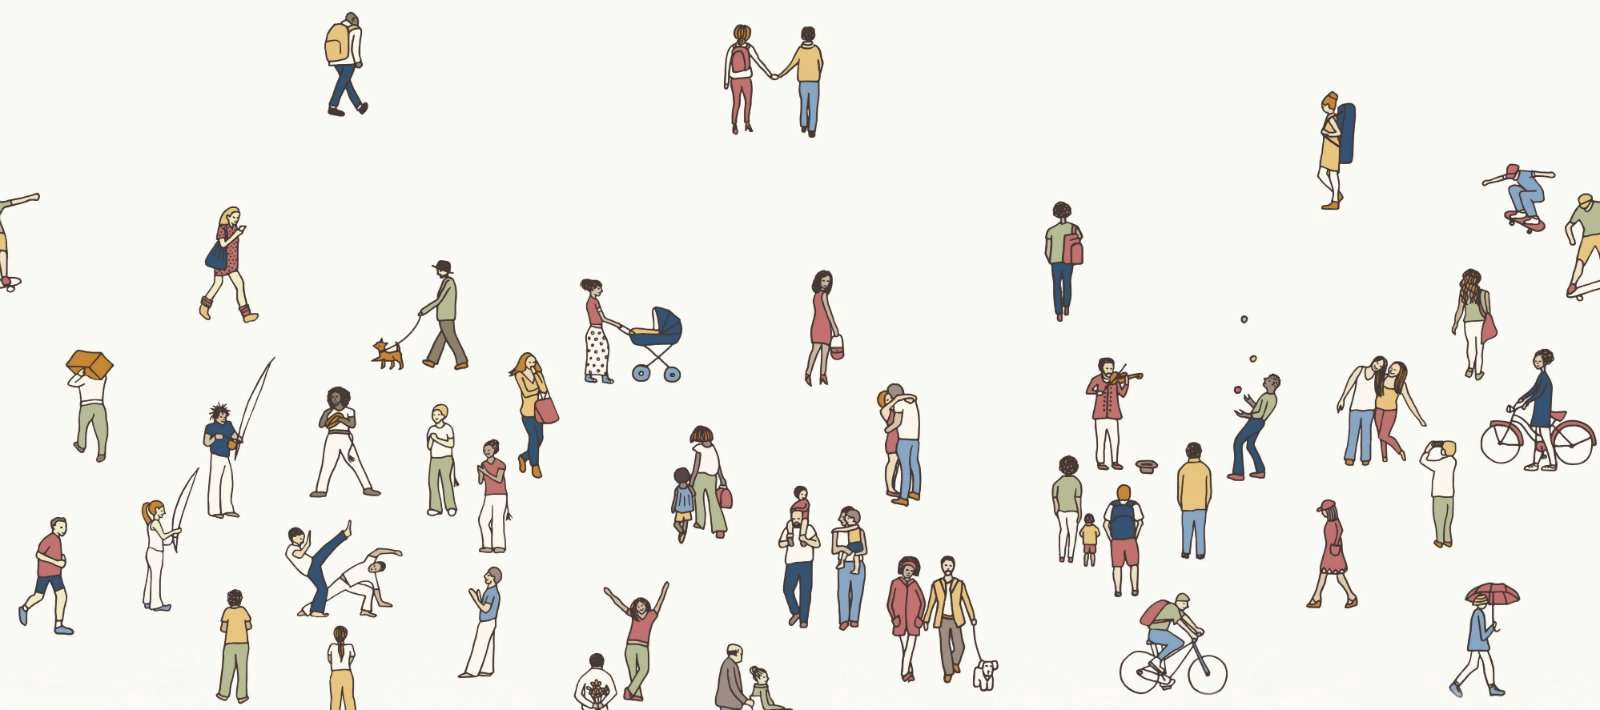 Illustration depicting people hanging out in a public space.